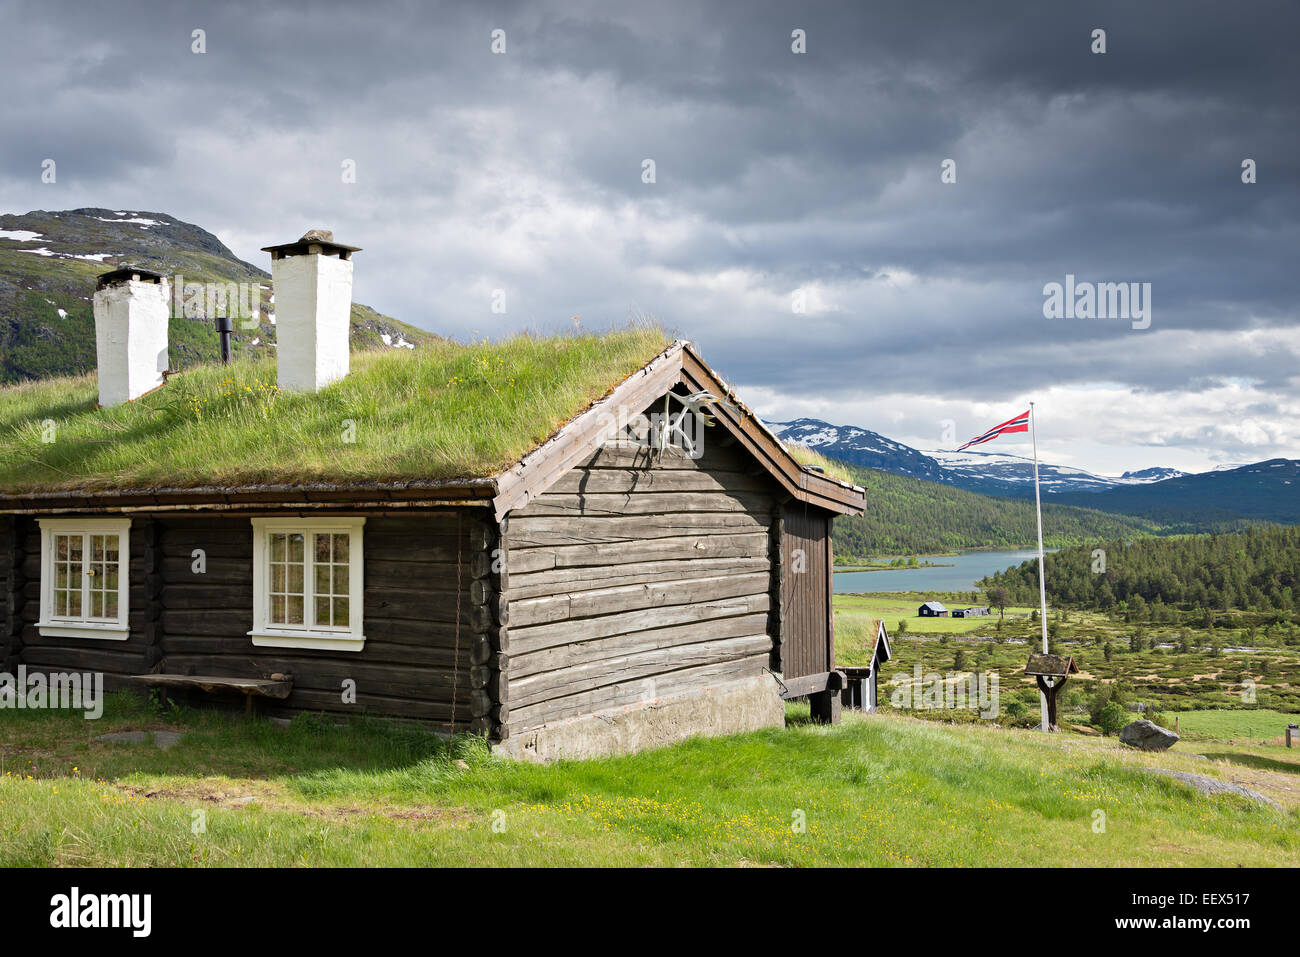 A sod roof log cabin with grass on top and two chimneys with a view over a lake in a valley in Jotunheimen national - Stock Image